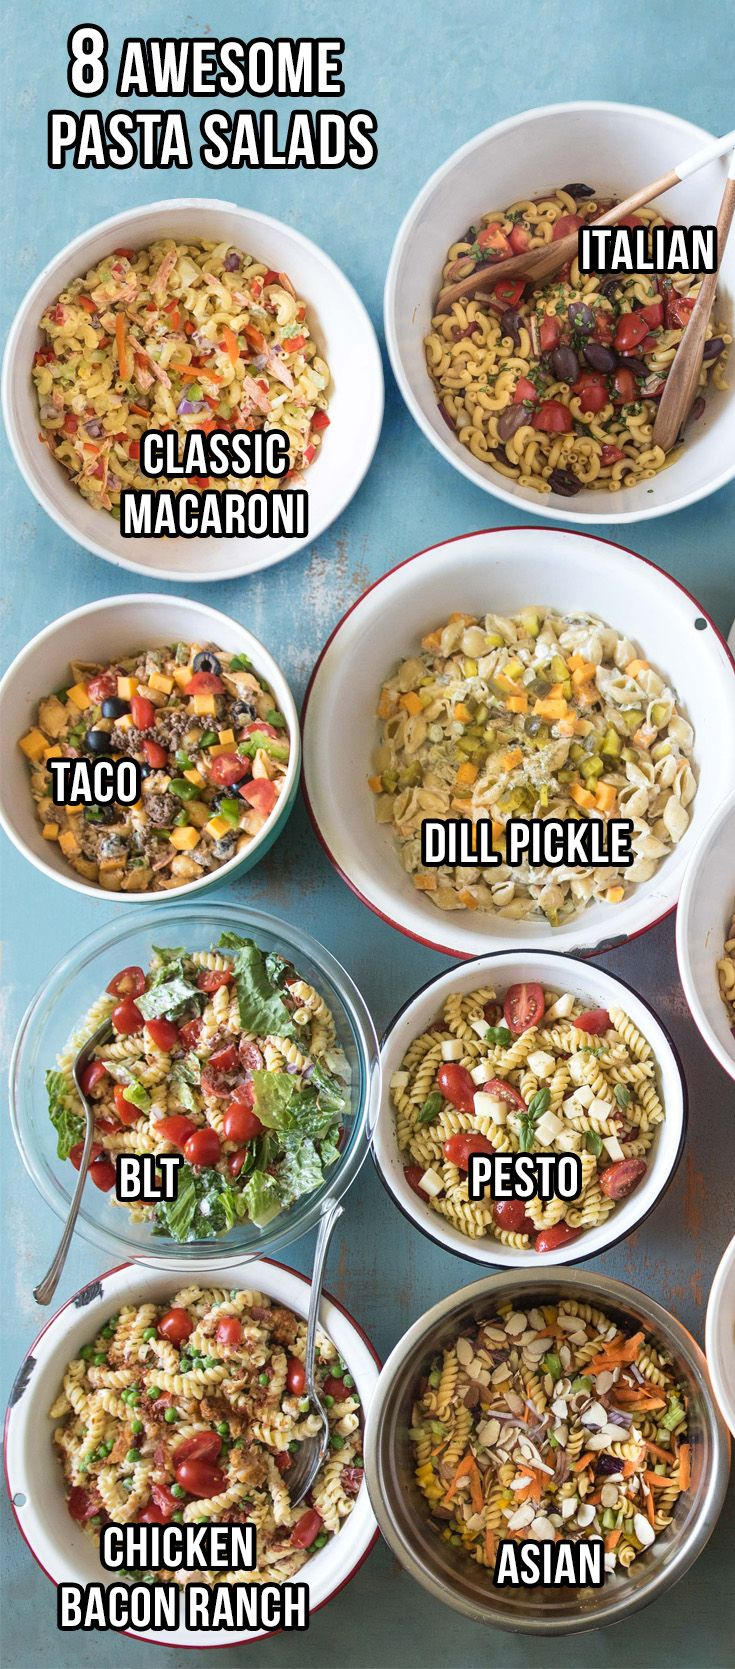 8 of my favorite pasta salad recipes plus tips and tricks on making the best pasta salad ever. BLT, Asian, Italian, Pesto, and more!